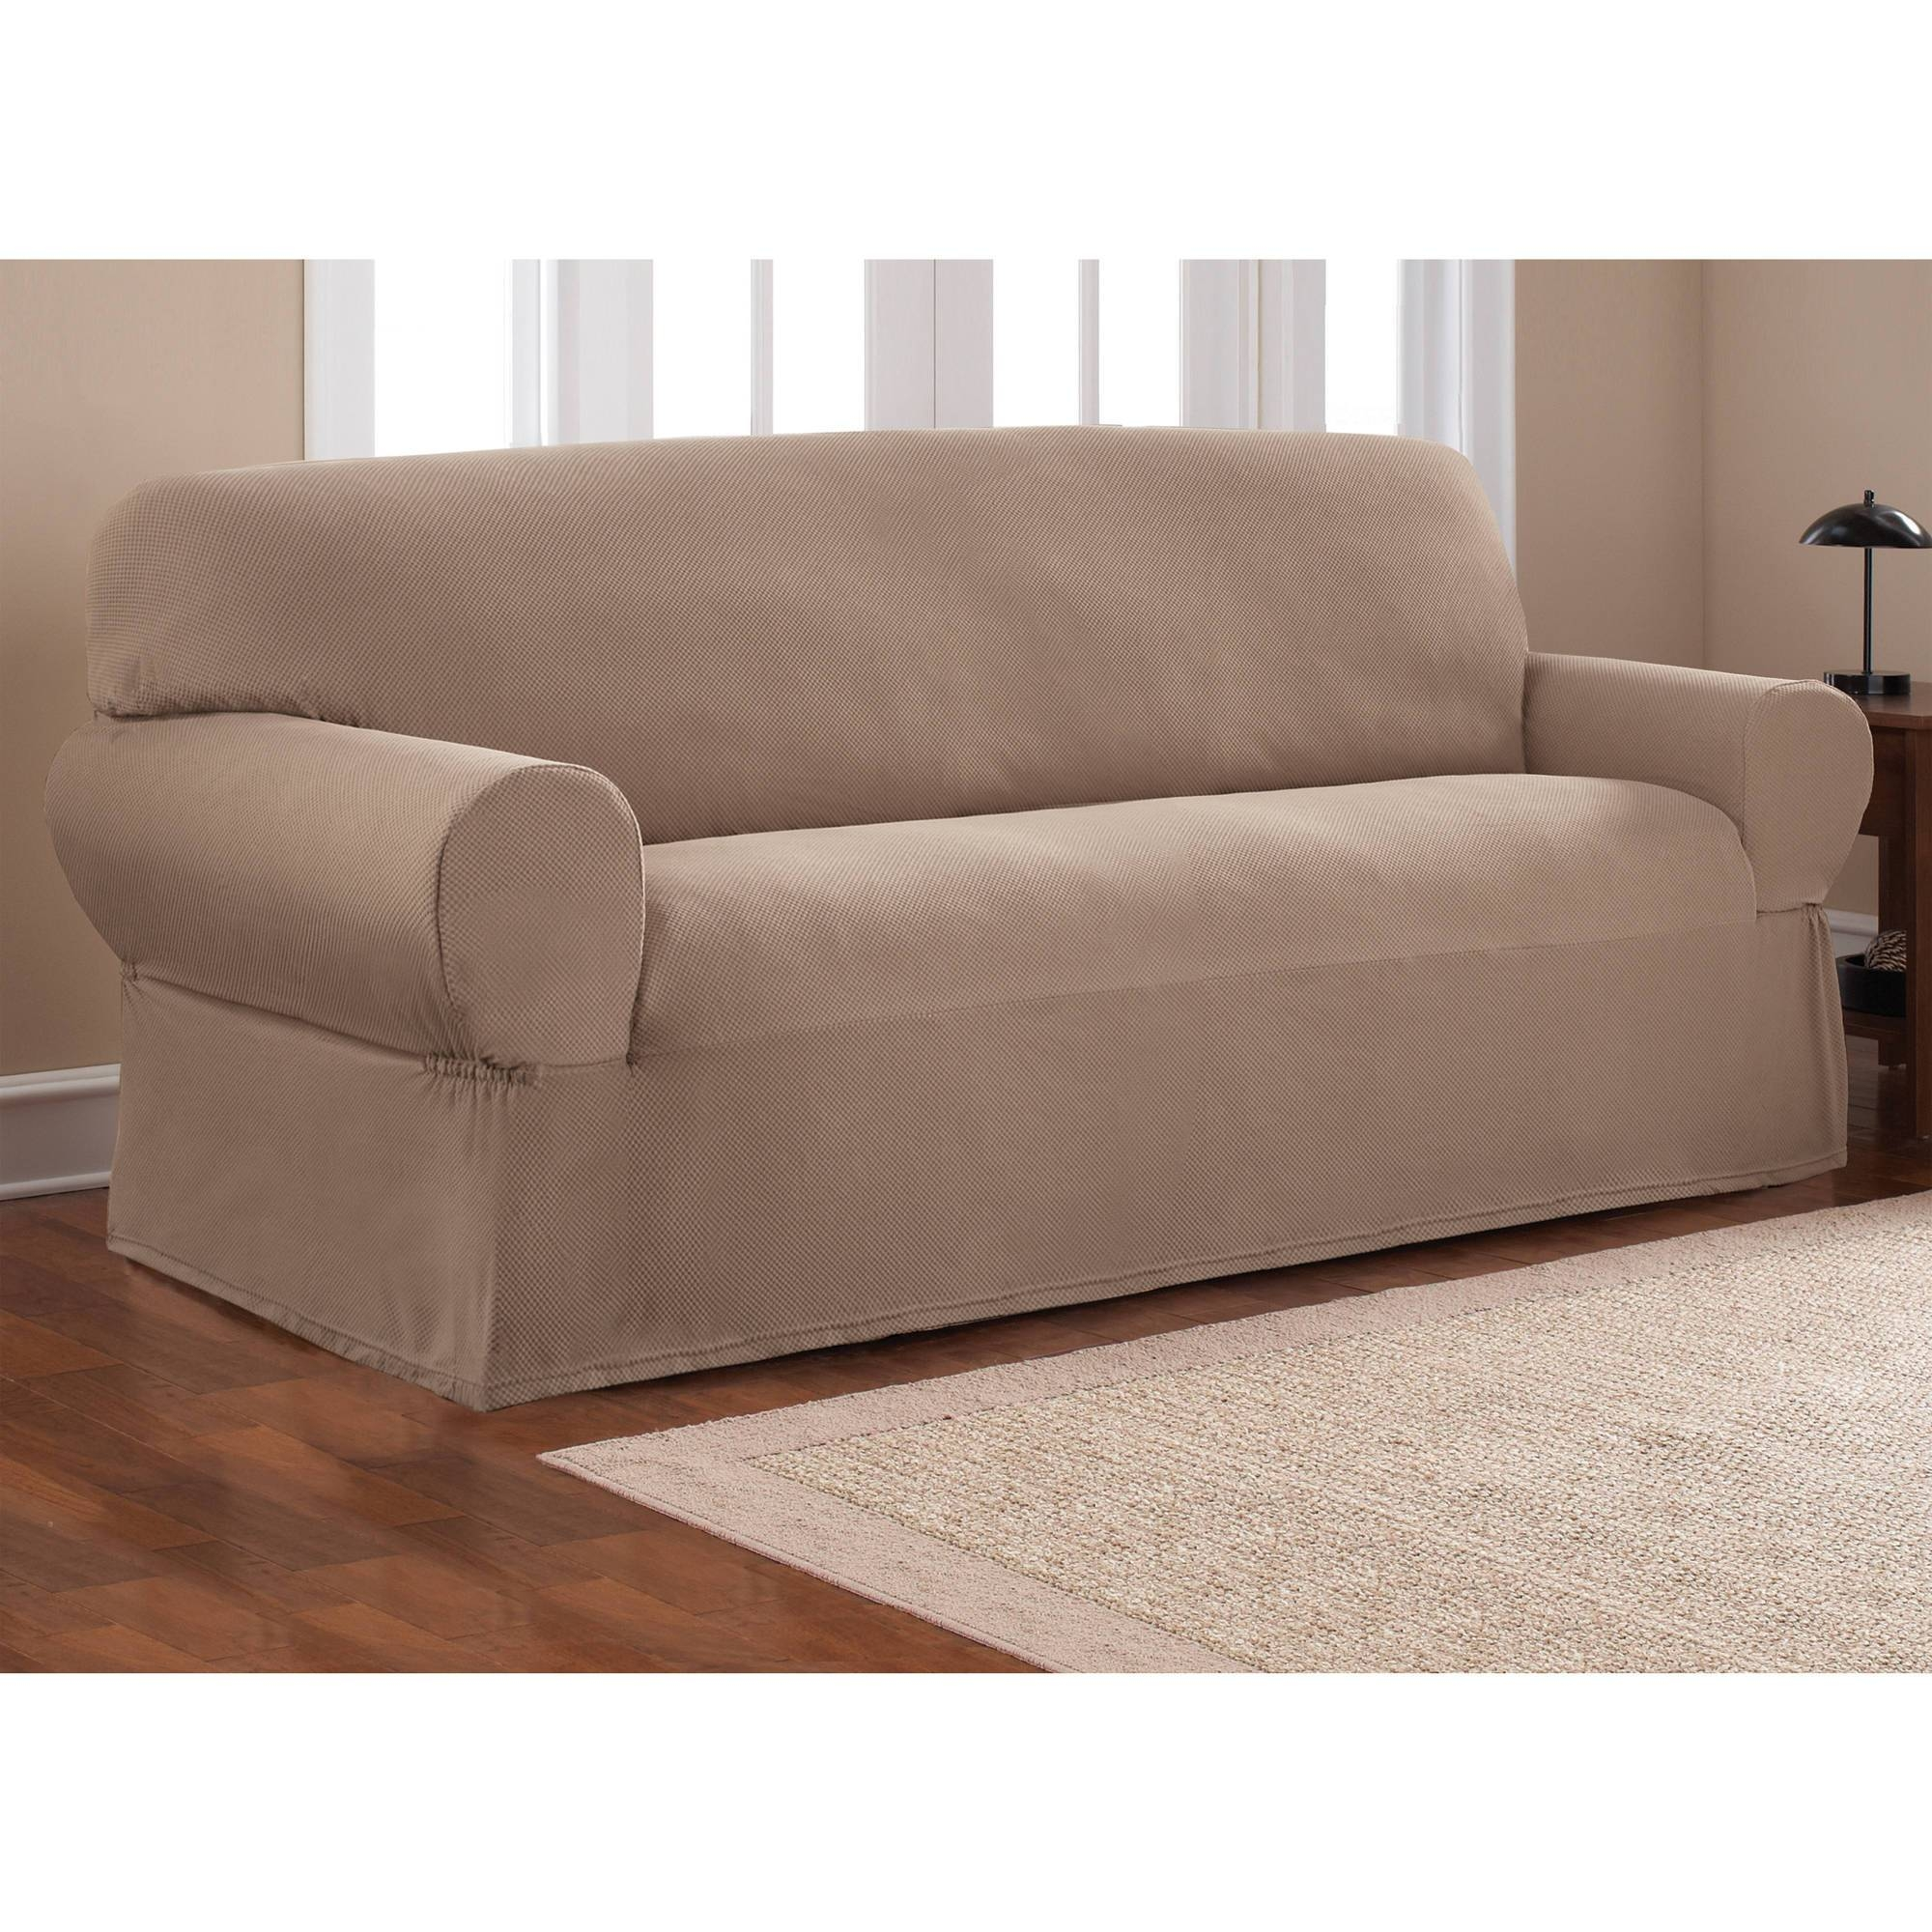 Mainstays 1-Piece Stretch Fabric Sofa Slipcover - Walmart throughout Sofa And Loveseat Covers (Image 6 of 15)